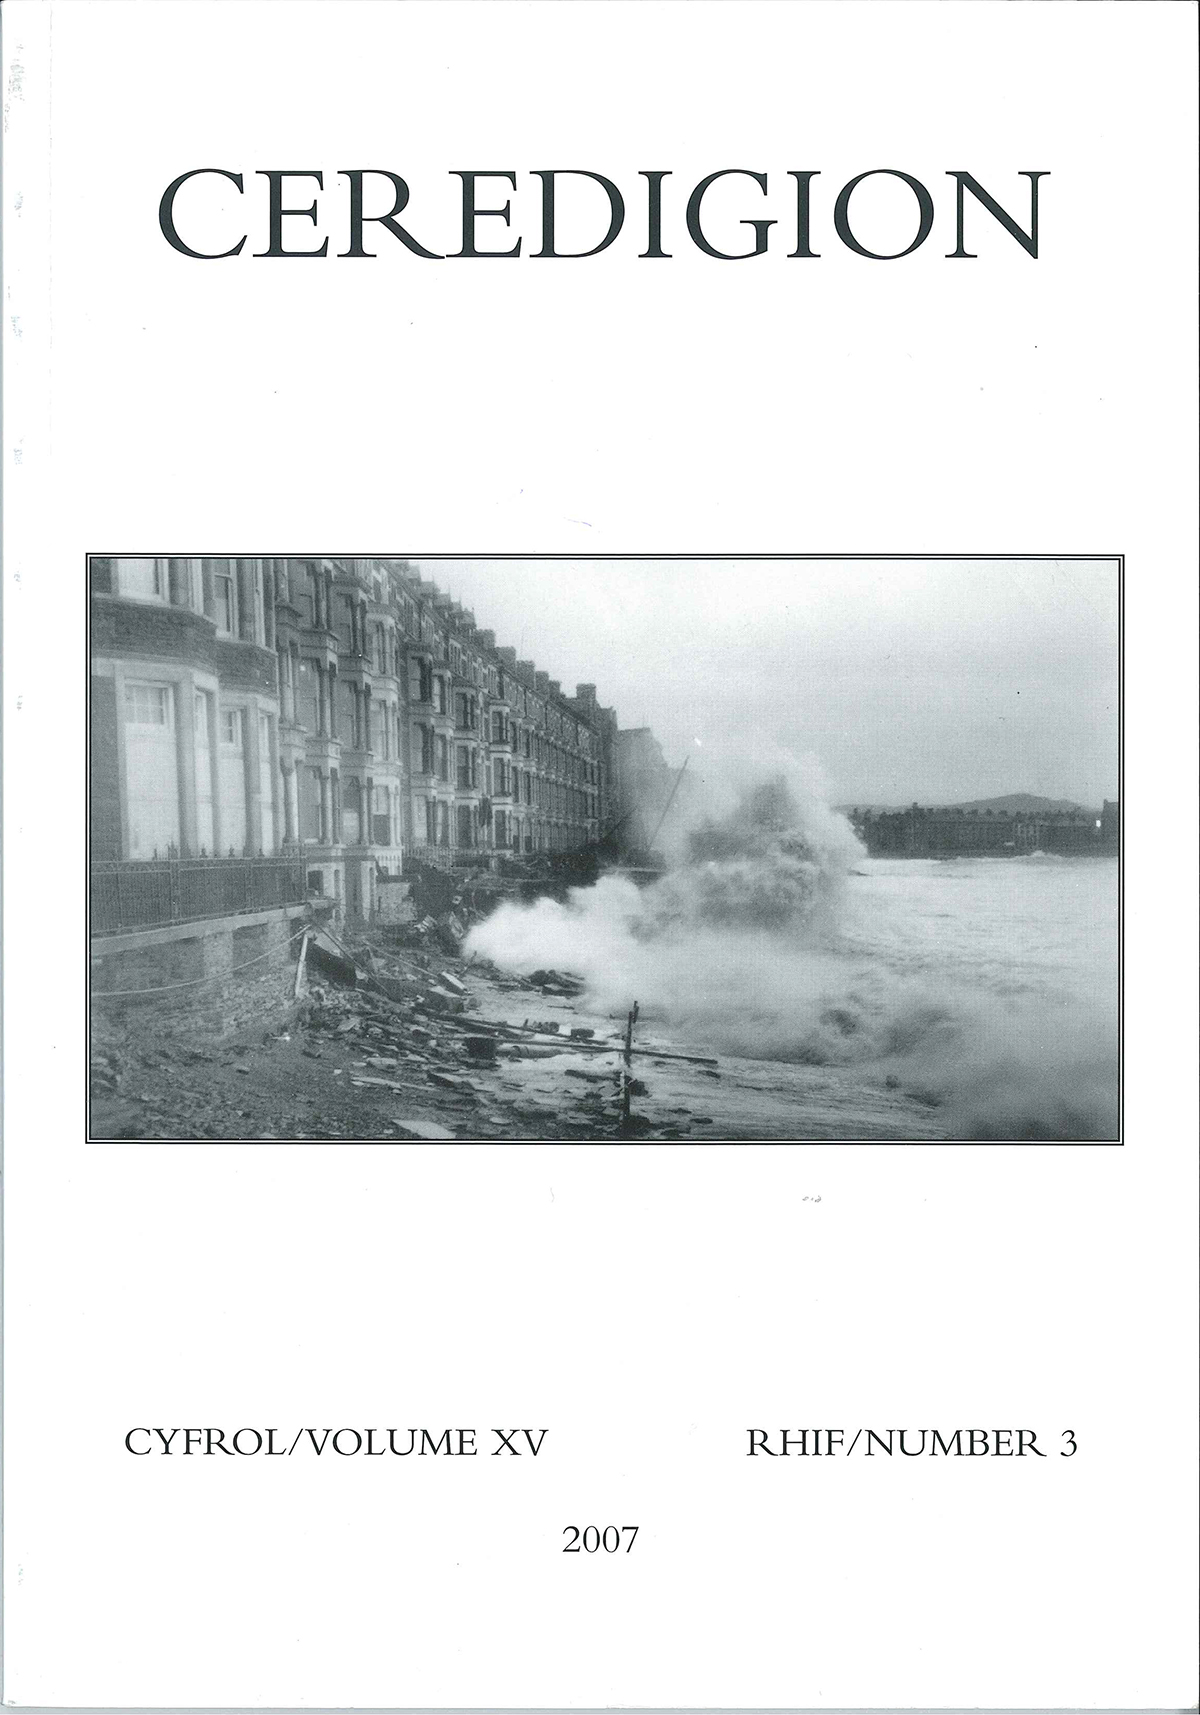 Ceredigion - Journal of the Ceredigion Historical Society Vol XV, No 3, 2007 - ISBN 0069 2263